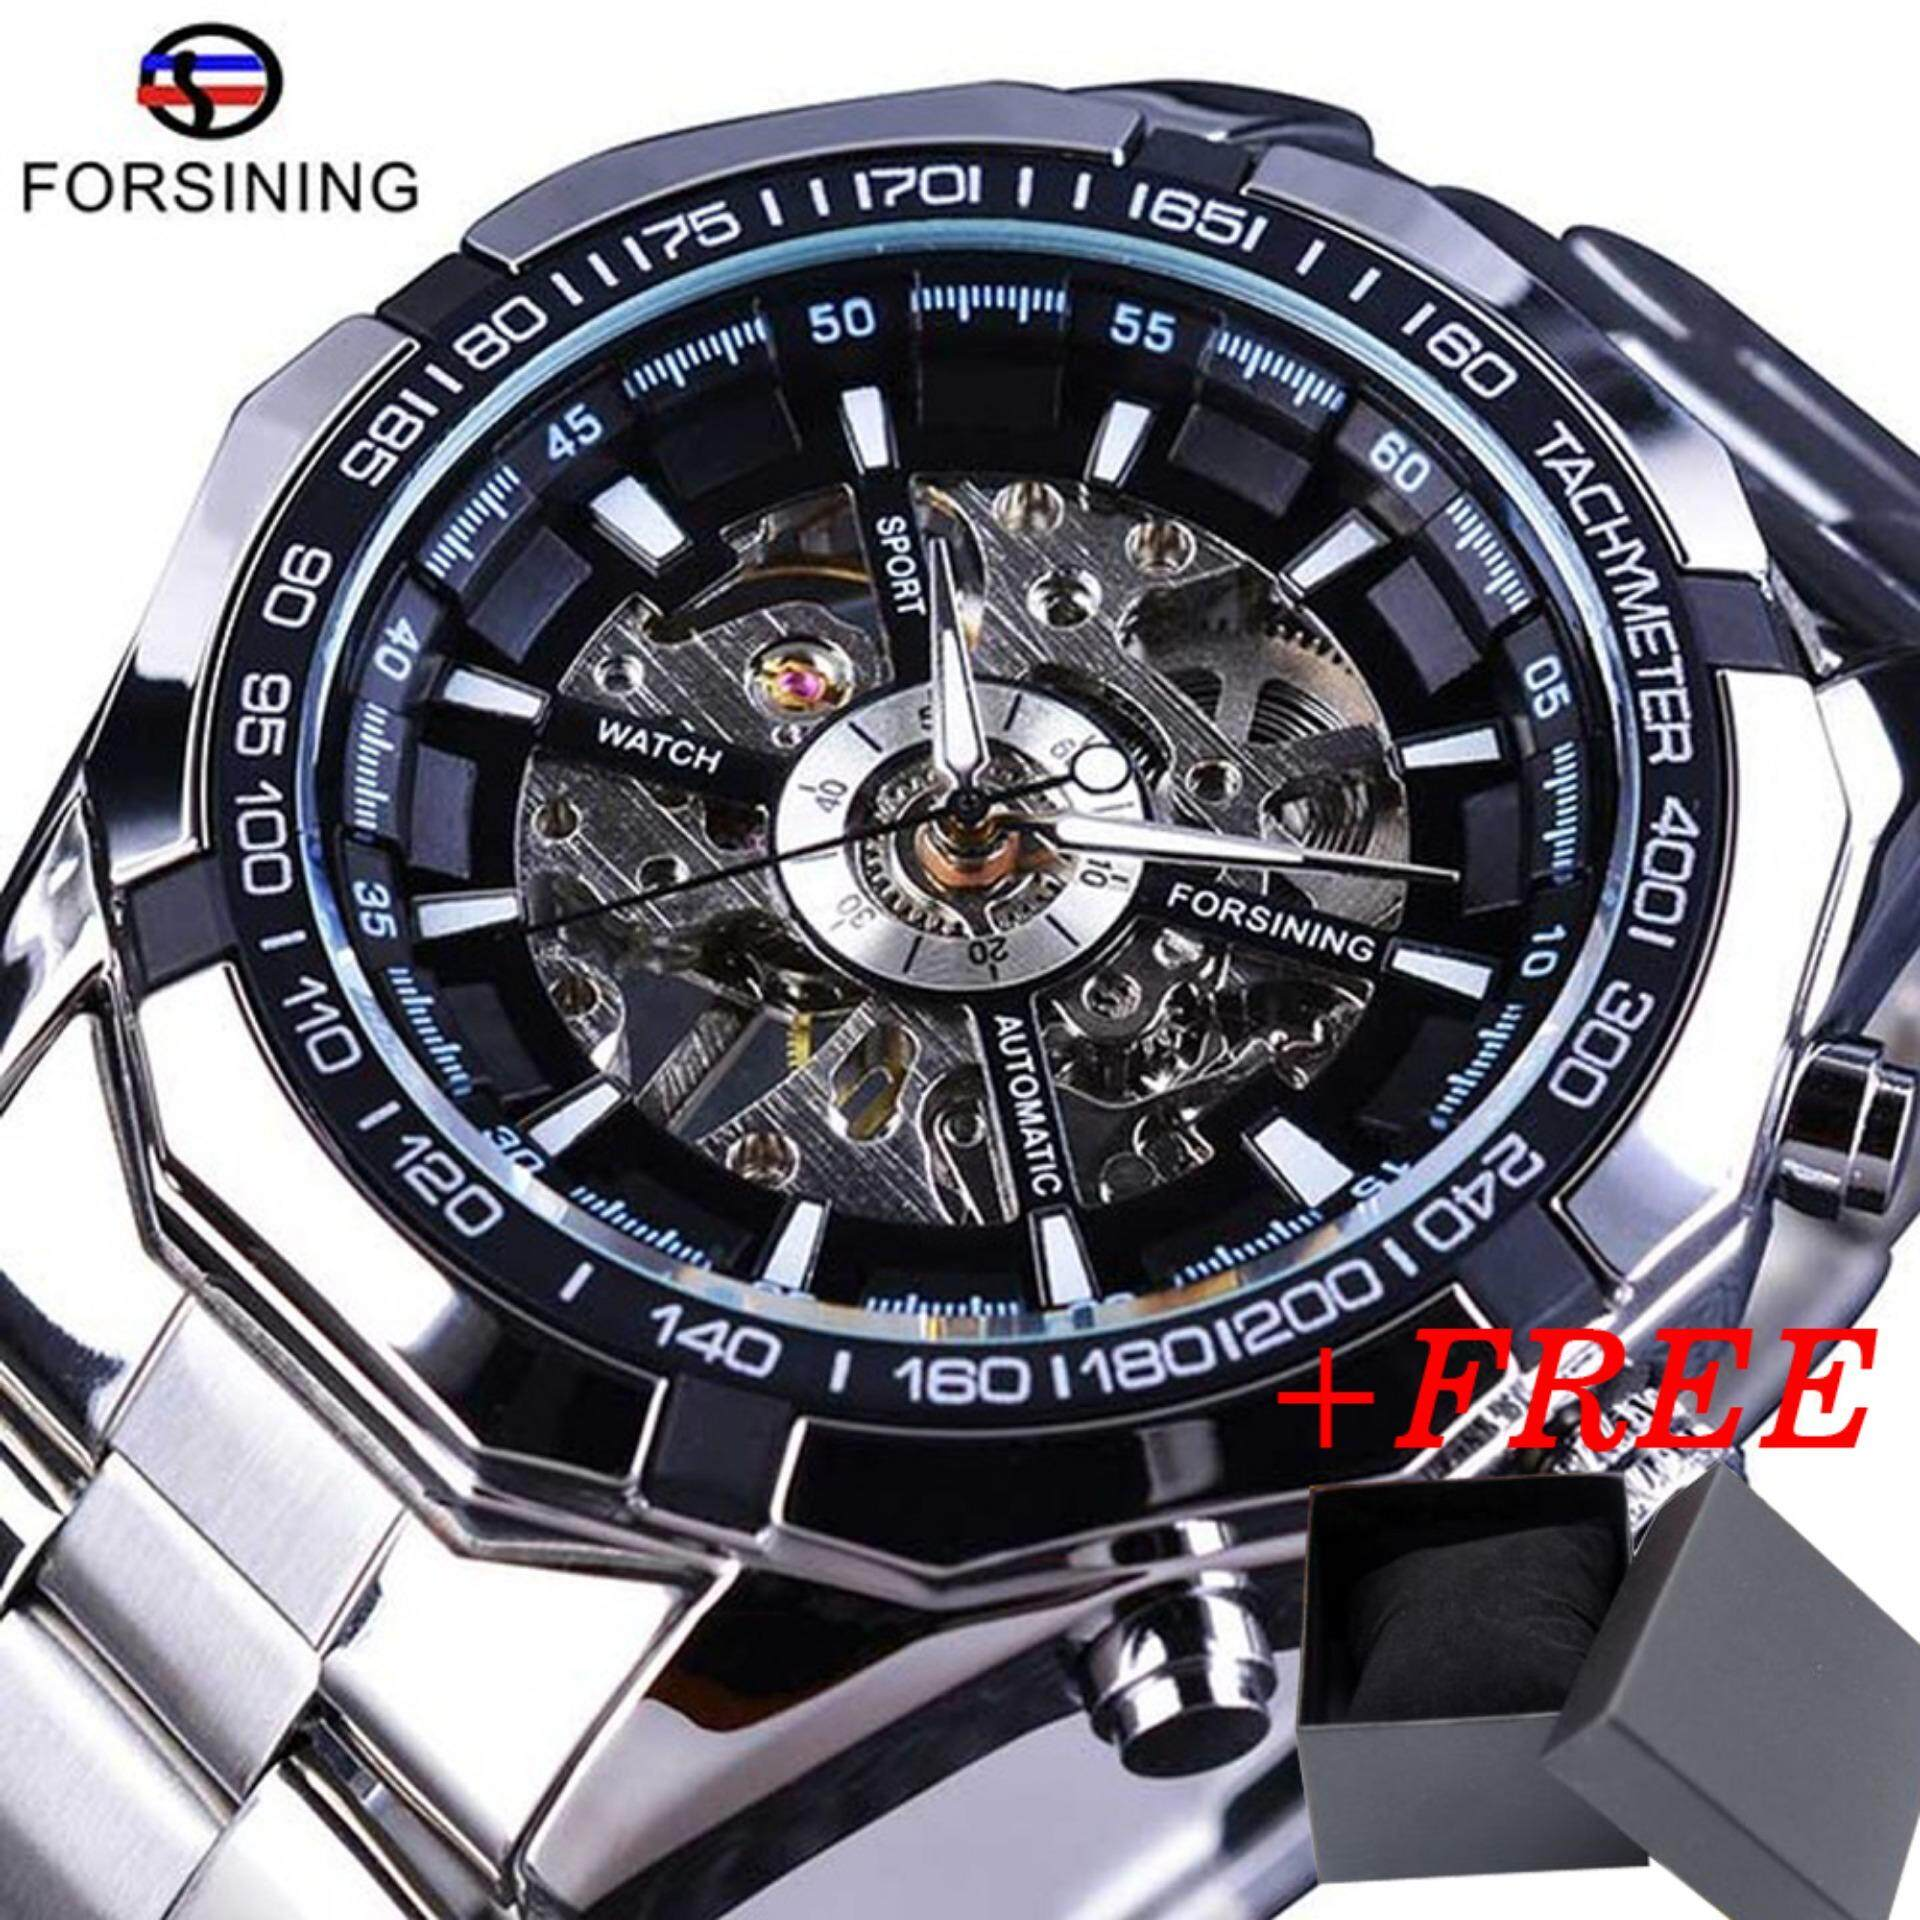 Brand Forsining Watch Luxury Fashion Vintage Steel Stainless Clock Black Roman Dial Automatic Mechanical Skeleton Wristwatch For Men Malaysia